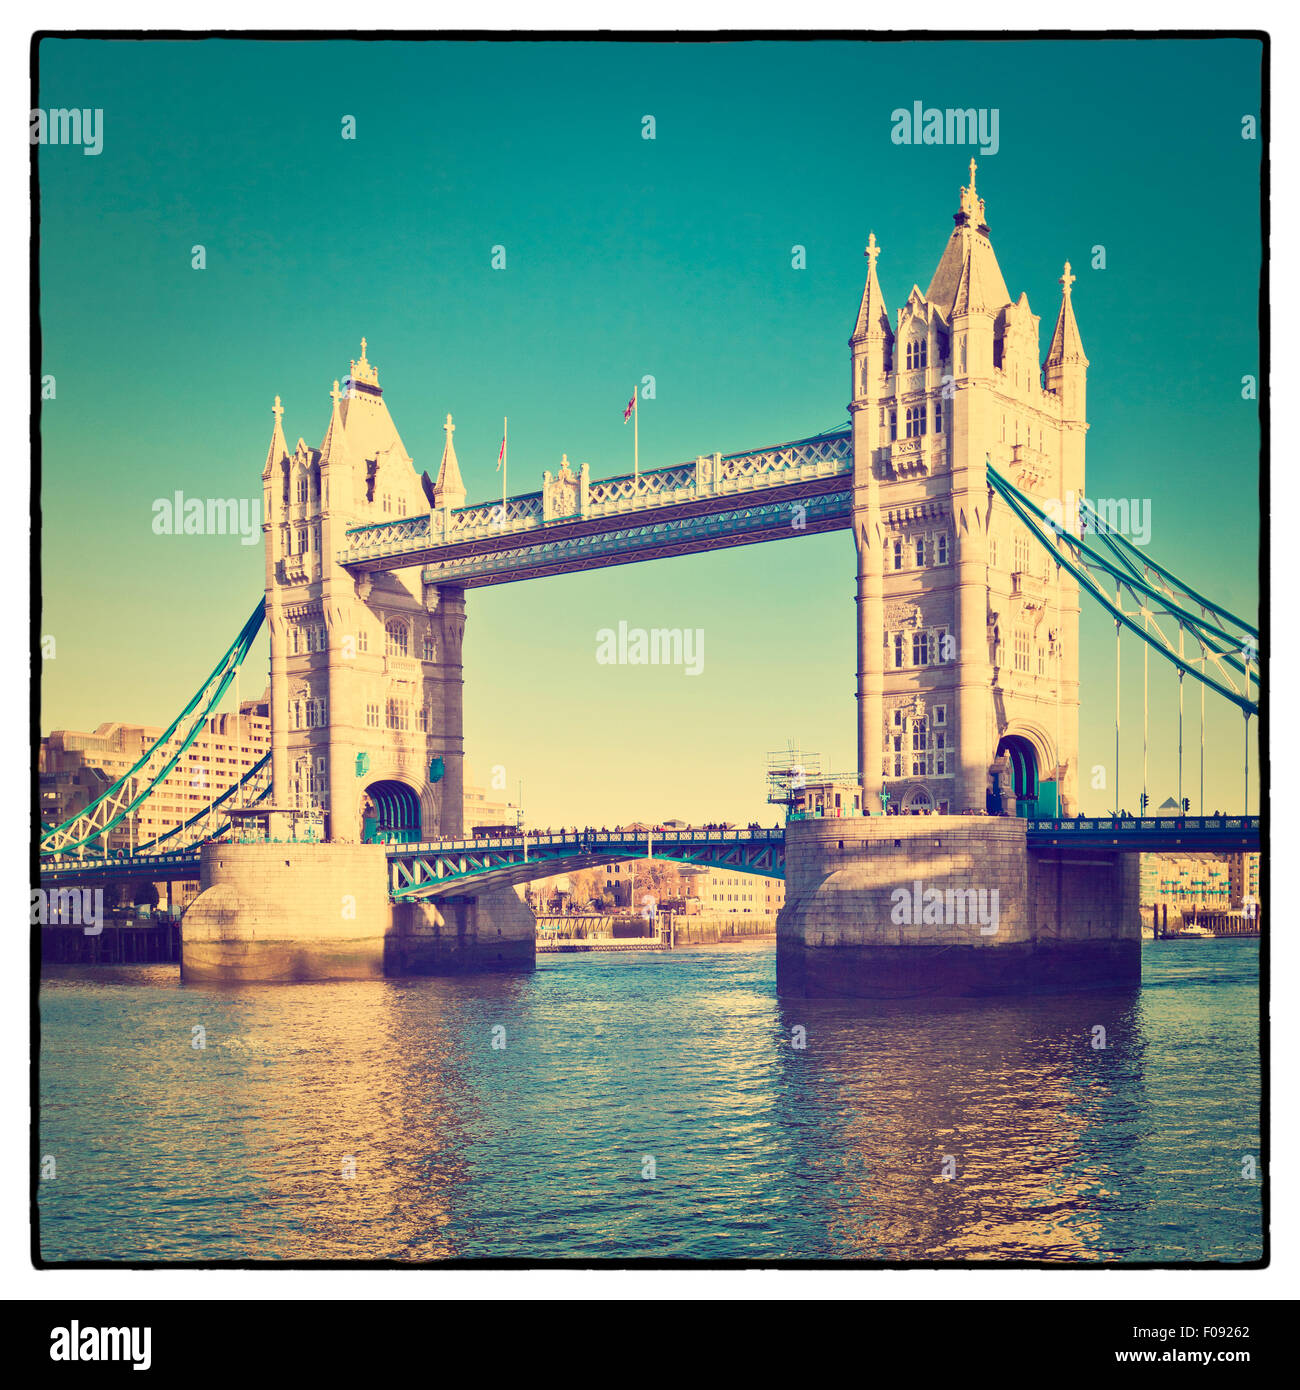 Tower Bridge in London with Instagram effect filter - Stock Image